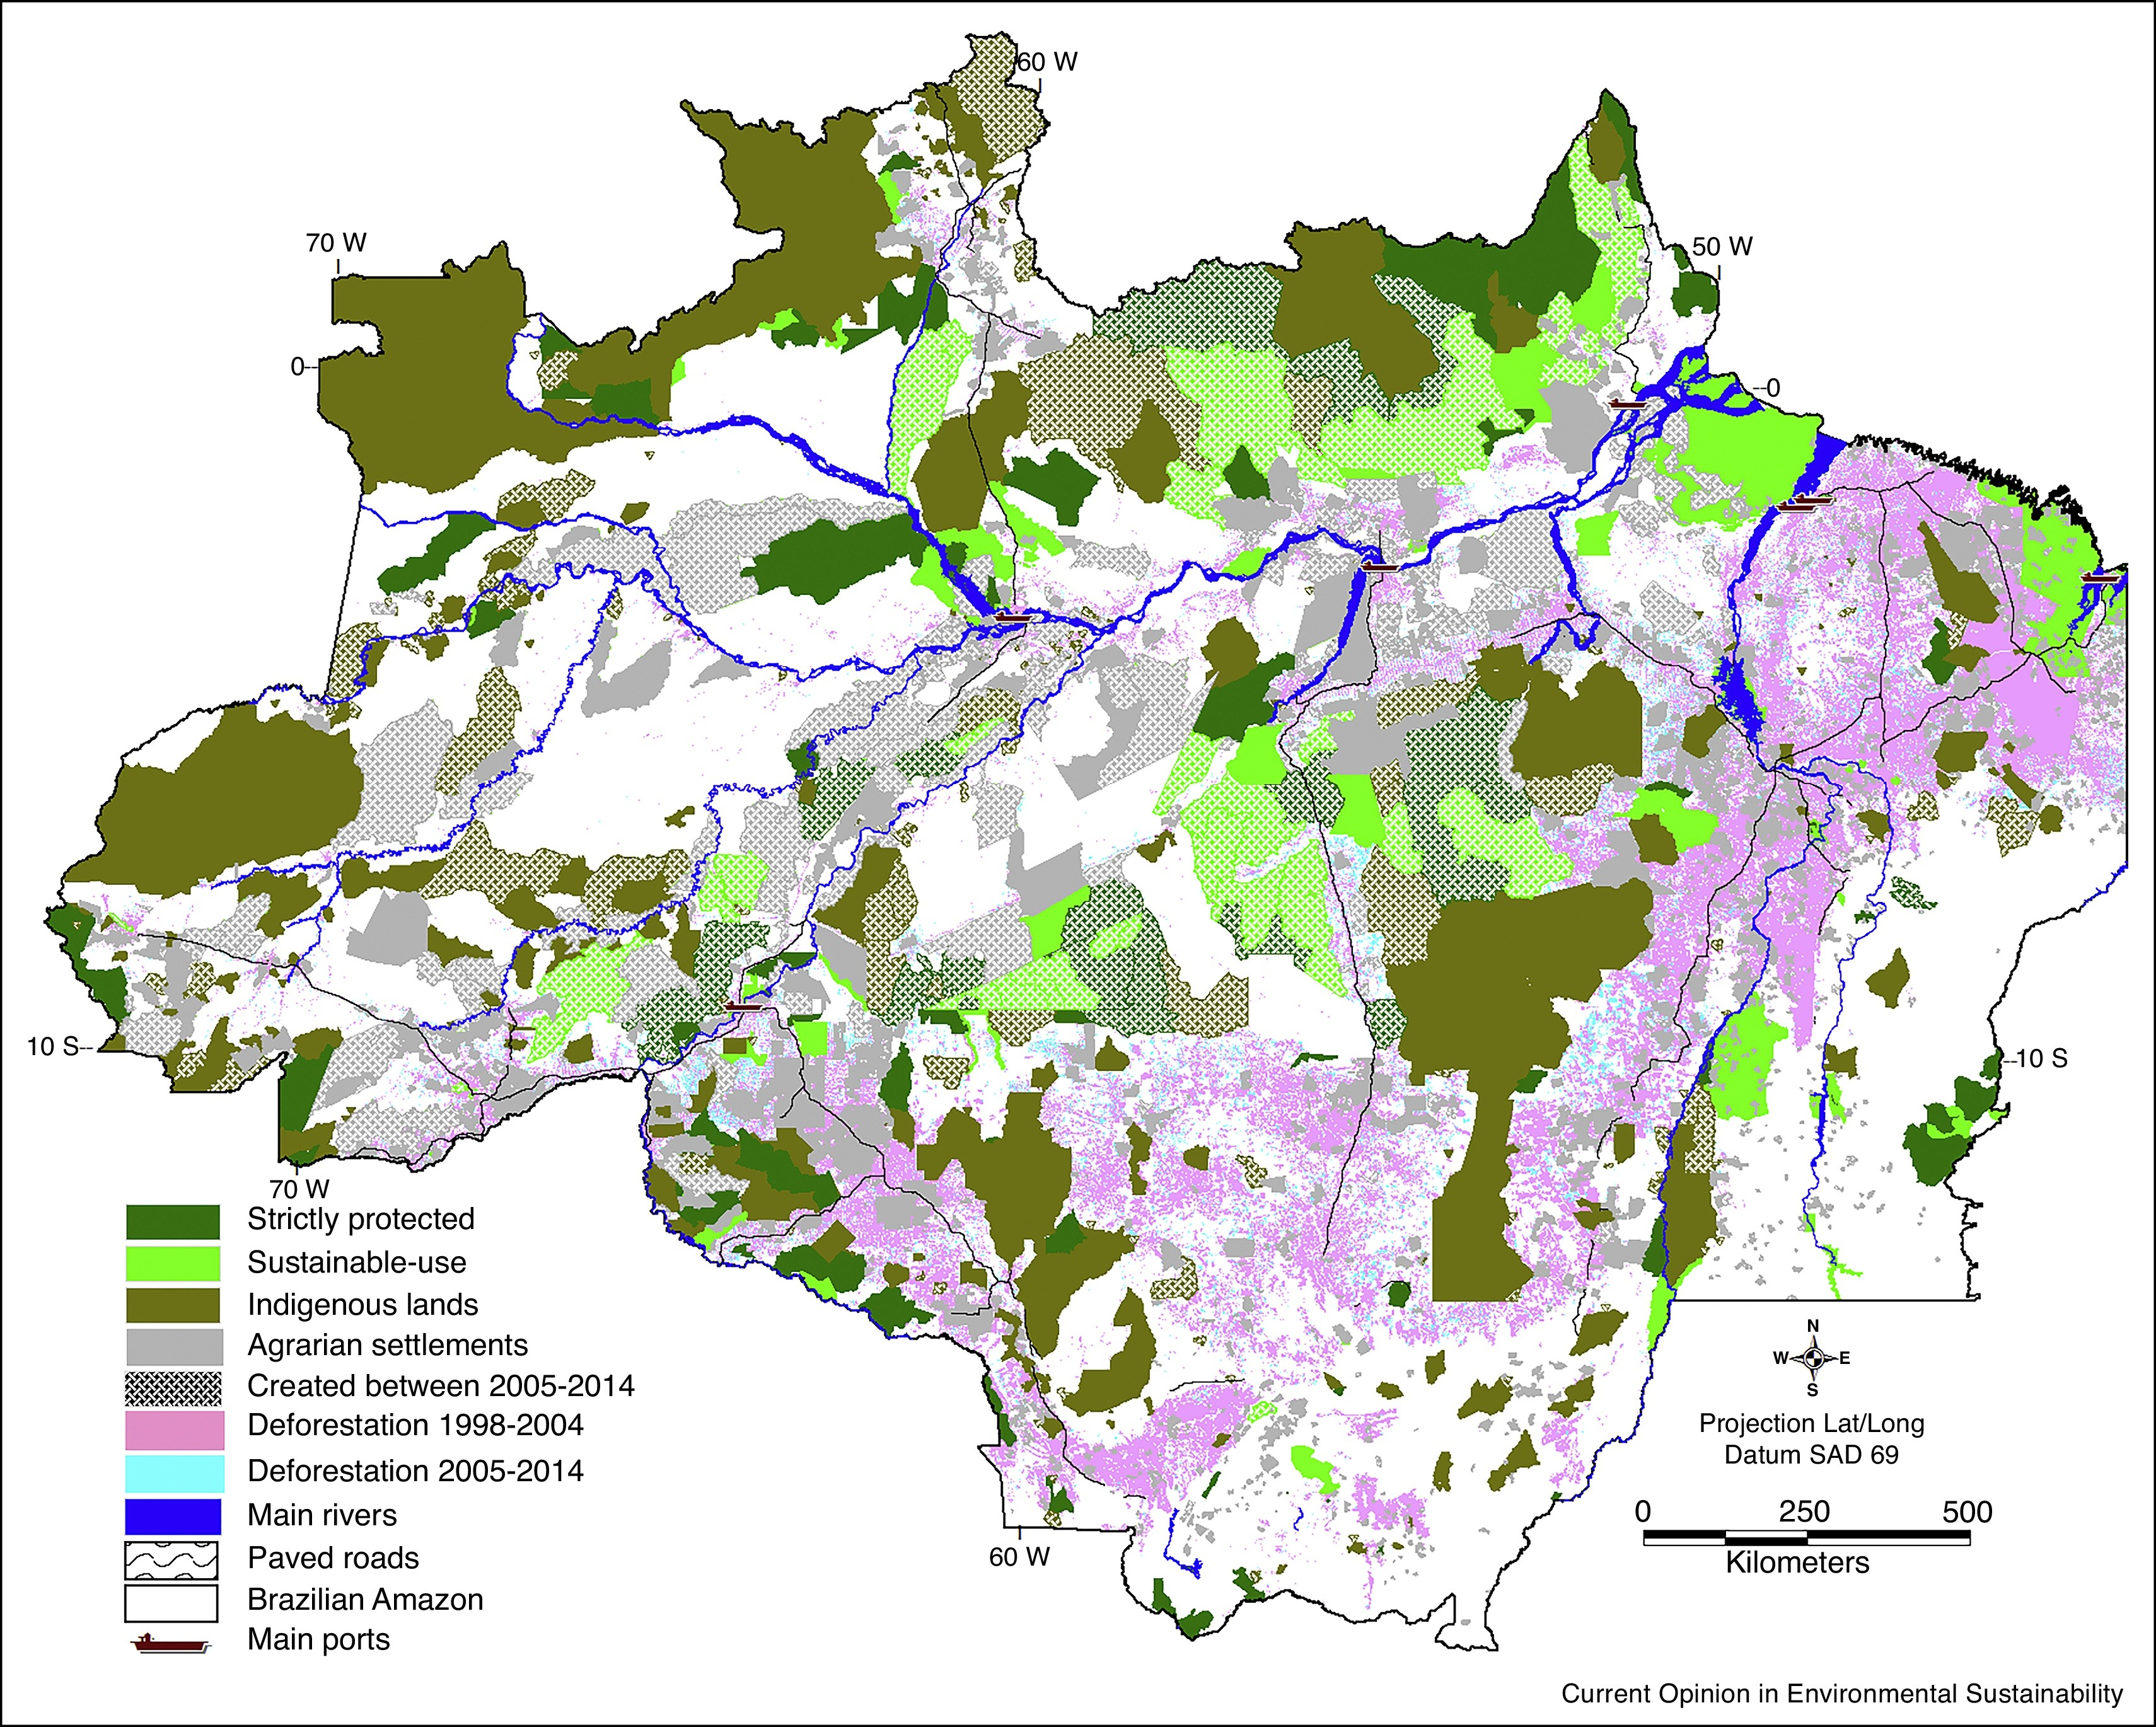 Spatial distribution of deforestation observed in 1988–2004 and 2005–2014, including the main territorial units (agrarian settlements) created prior to 2004 and subsequently, along with key transportation infrastructure (paved roads and ports).